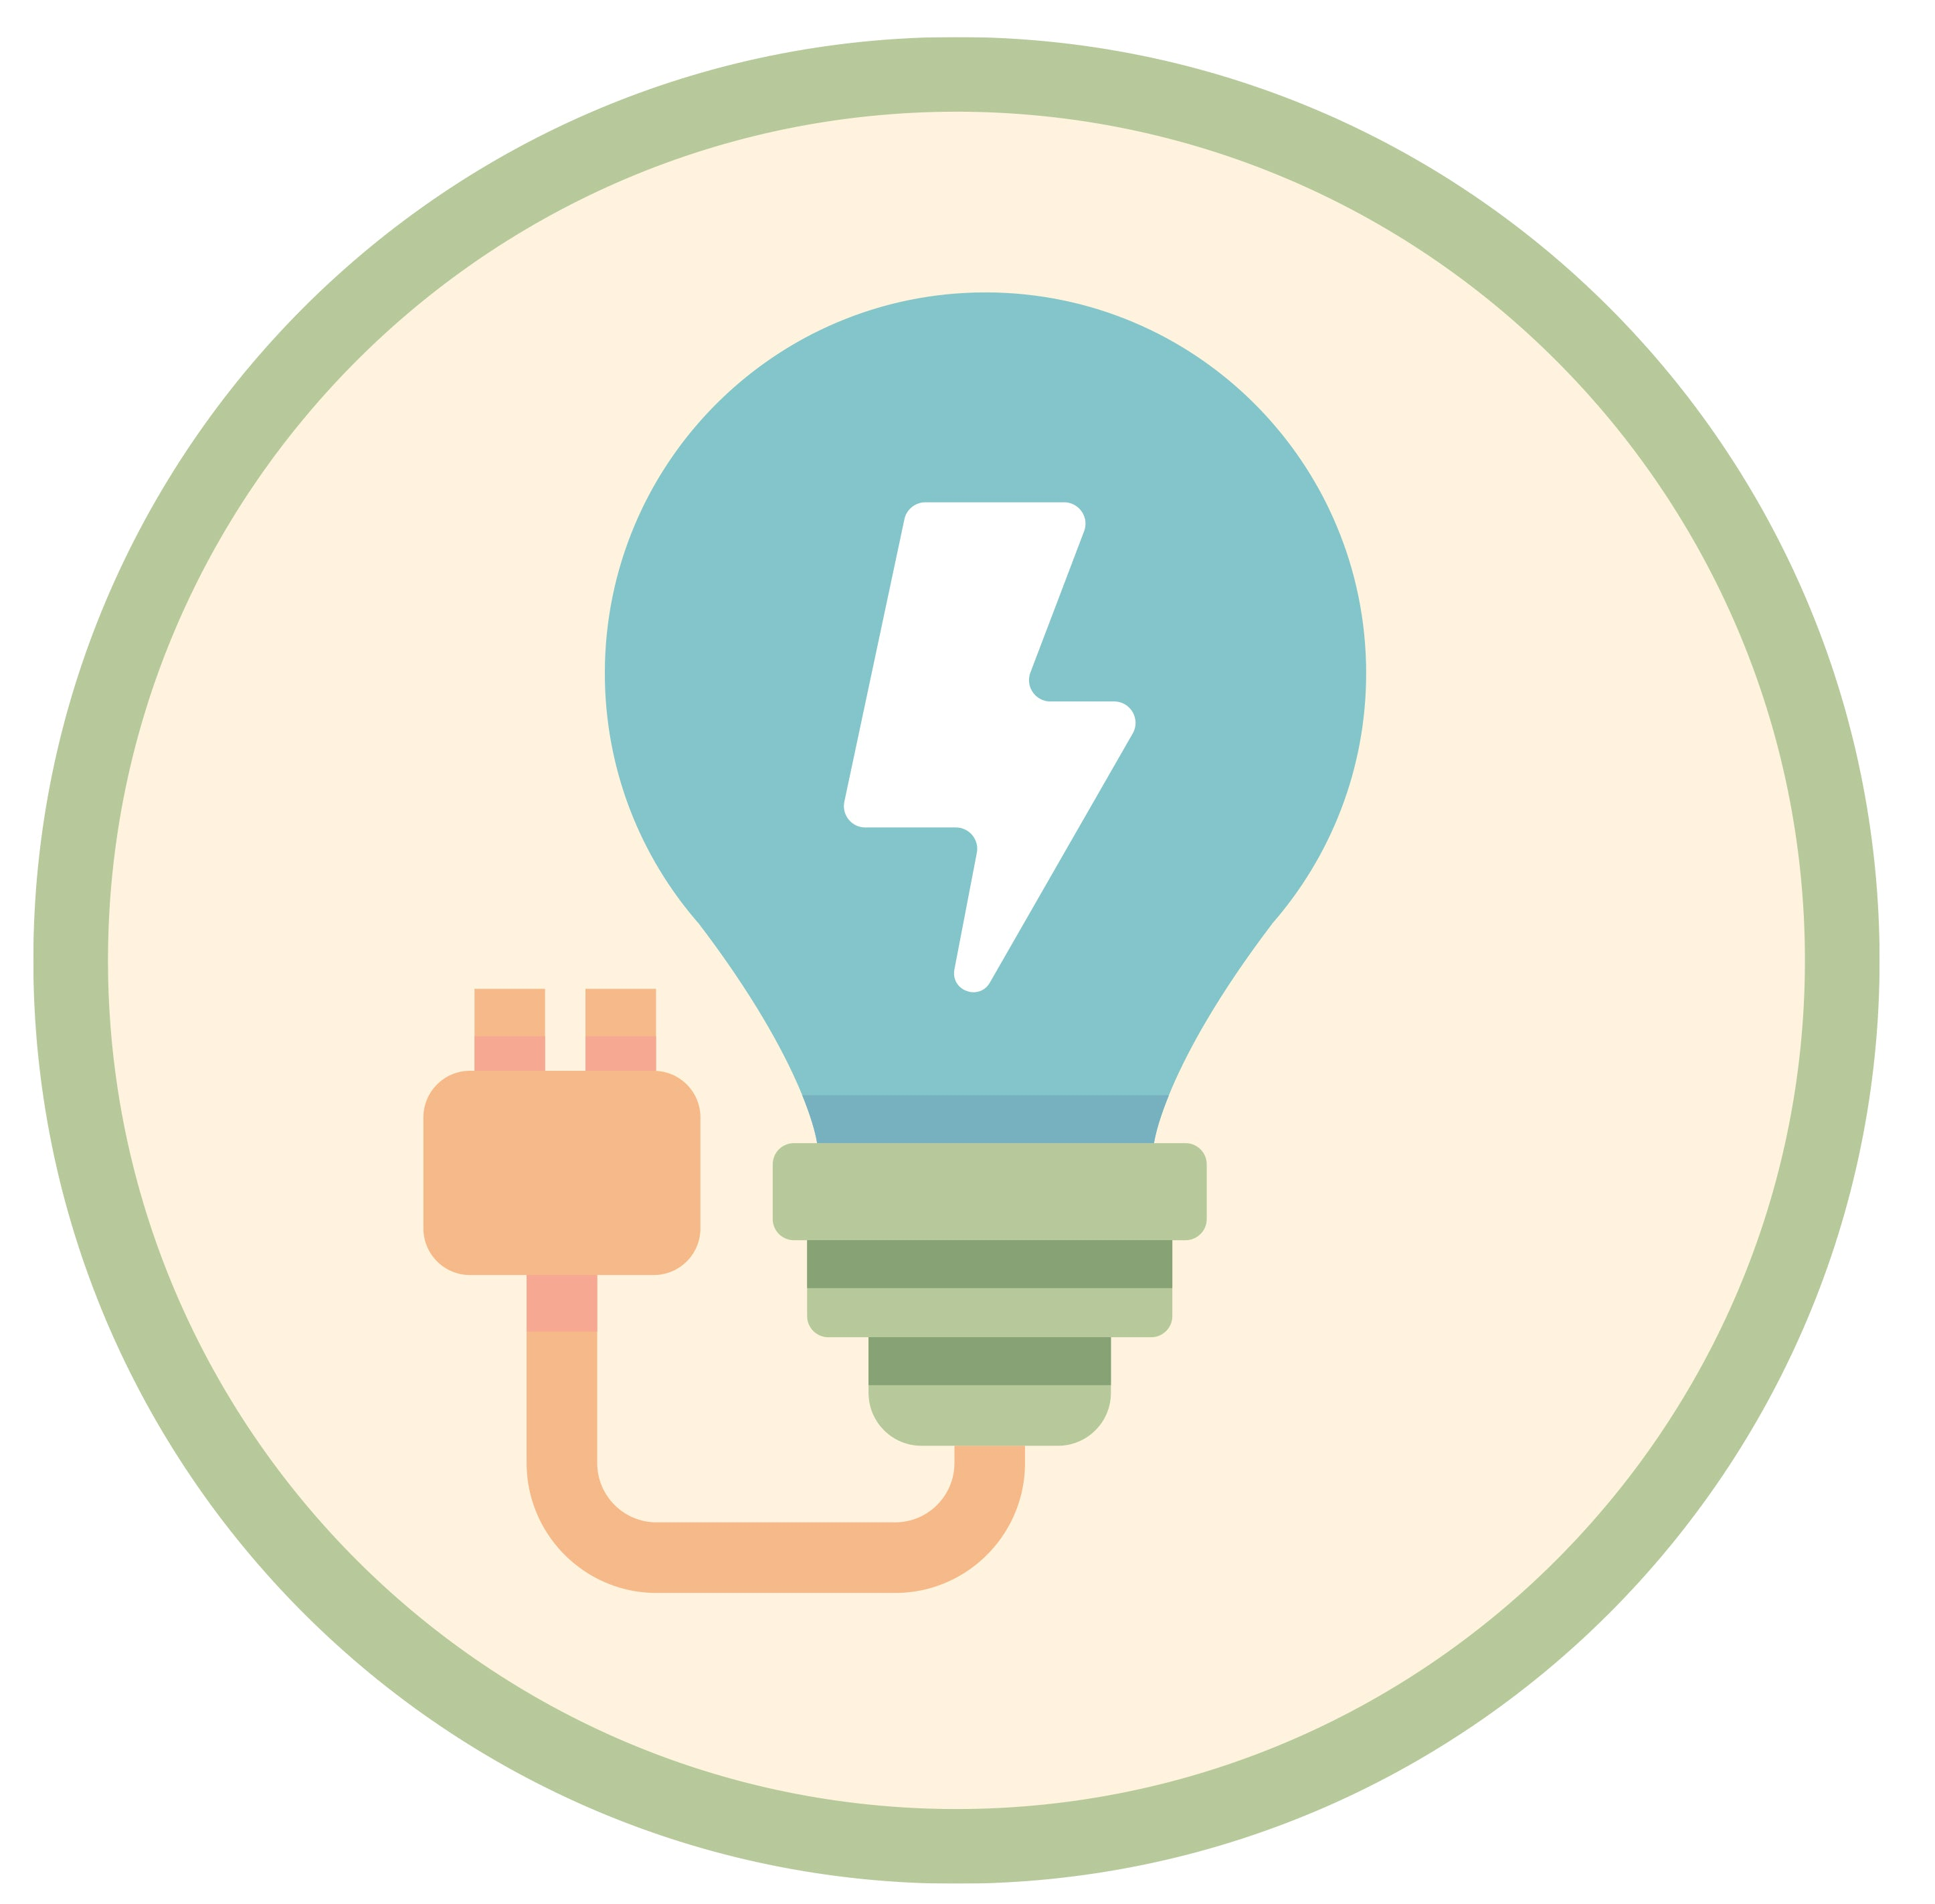 Turn off lights and Unplug - How To Live Sustainable - Eco Living and Sustainability Checklist